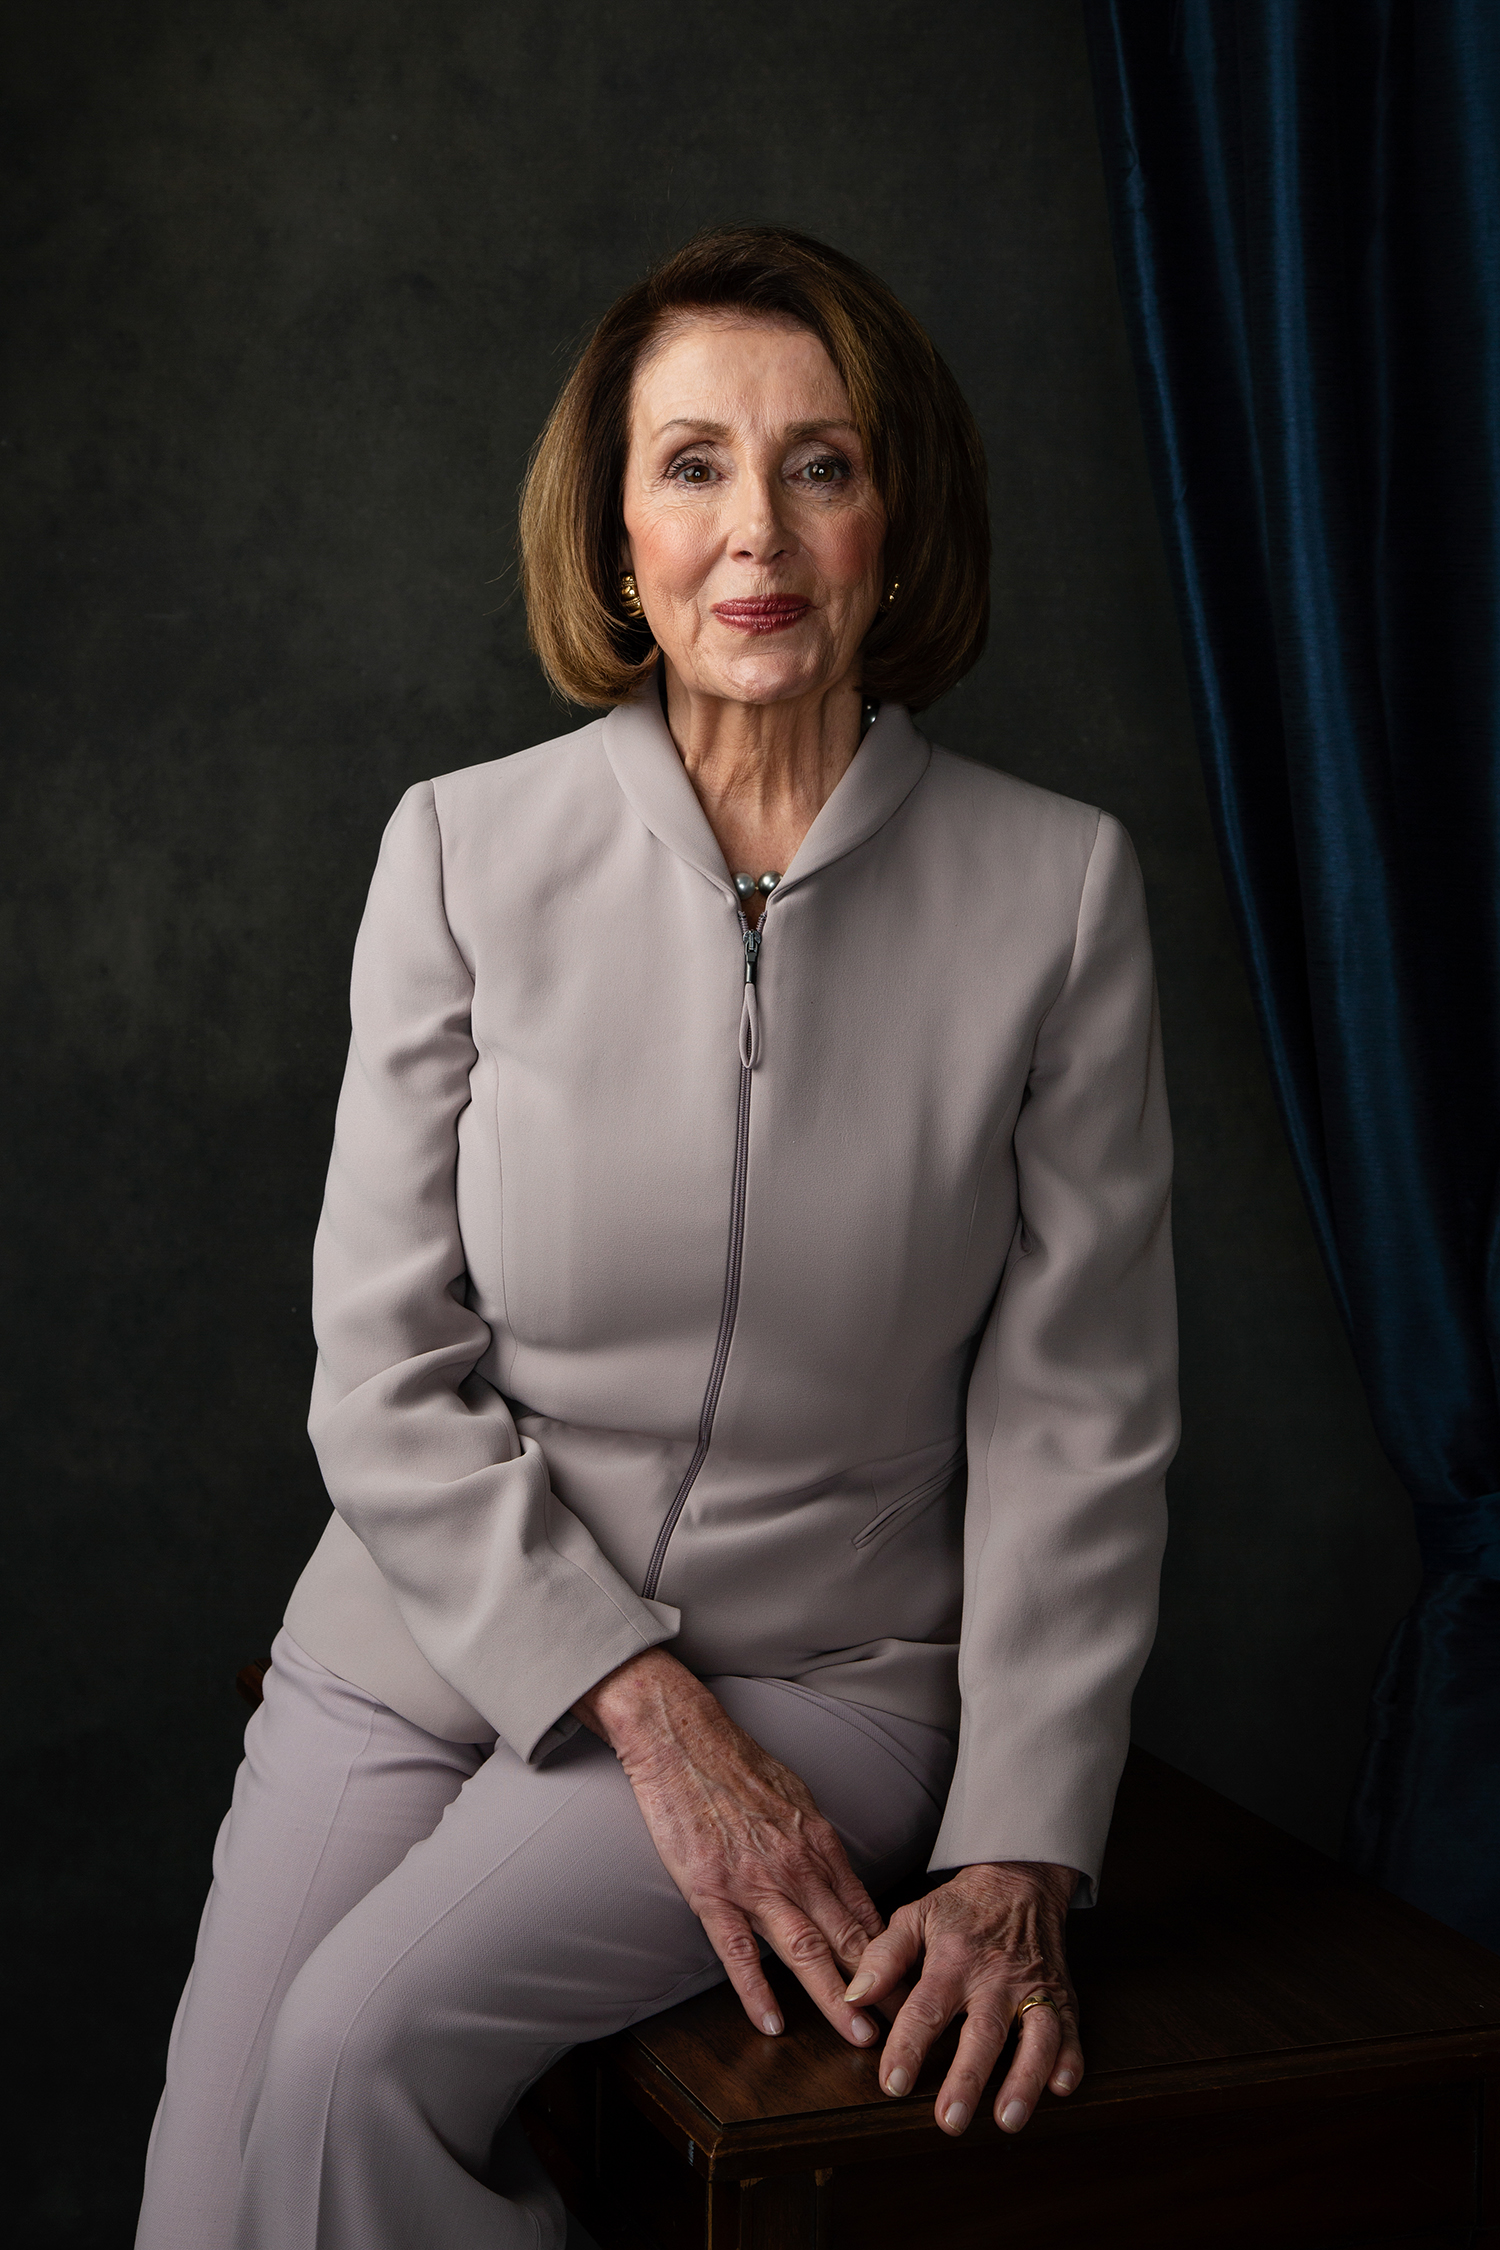 Nancy Pelosi *****HOLD FOR WOMEN IN CONGRESS PROJECT****Nancy Patricia Pelosi  is an American politician serving as Speaker of the United States House of Representatives since January 2019. First elected to Congress in 1987, she also served as Speaker from 2007 to 2011. She is the only female to have served as Speaker, and is the highest-ranking elected woman in United States history. Pelosi is second in the presidential line of succession, immediately after the Vice President. A member of the Democratic Party, Pelosi is currently in her 17th term as a congresswoman, representing California's 12th congressional district.